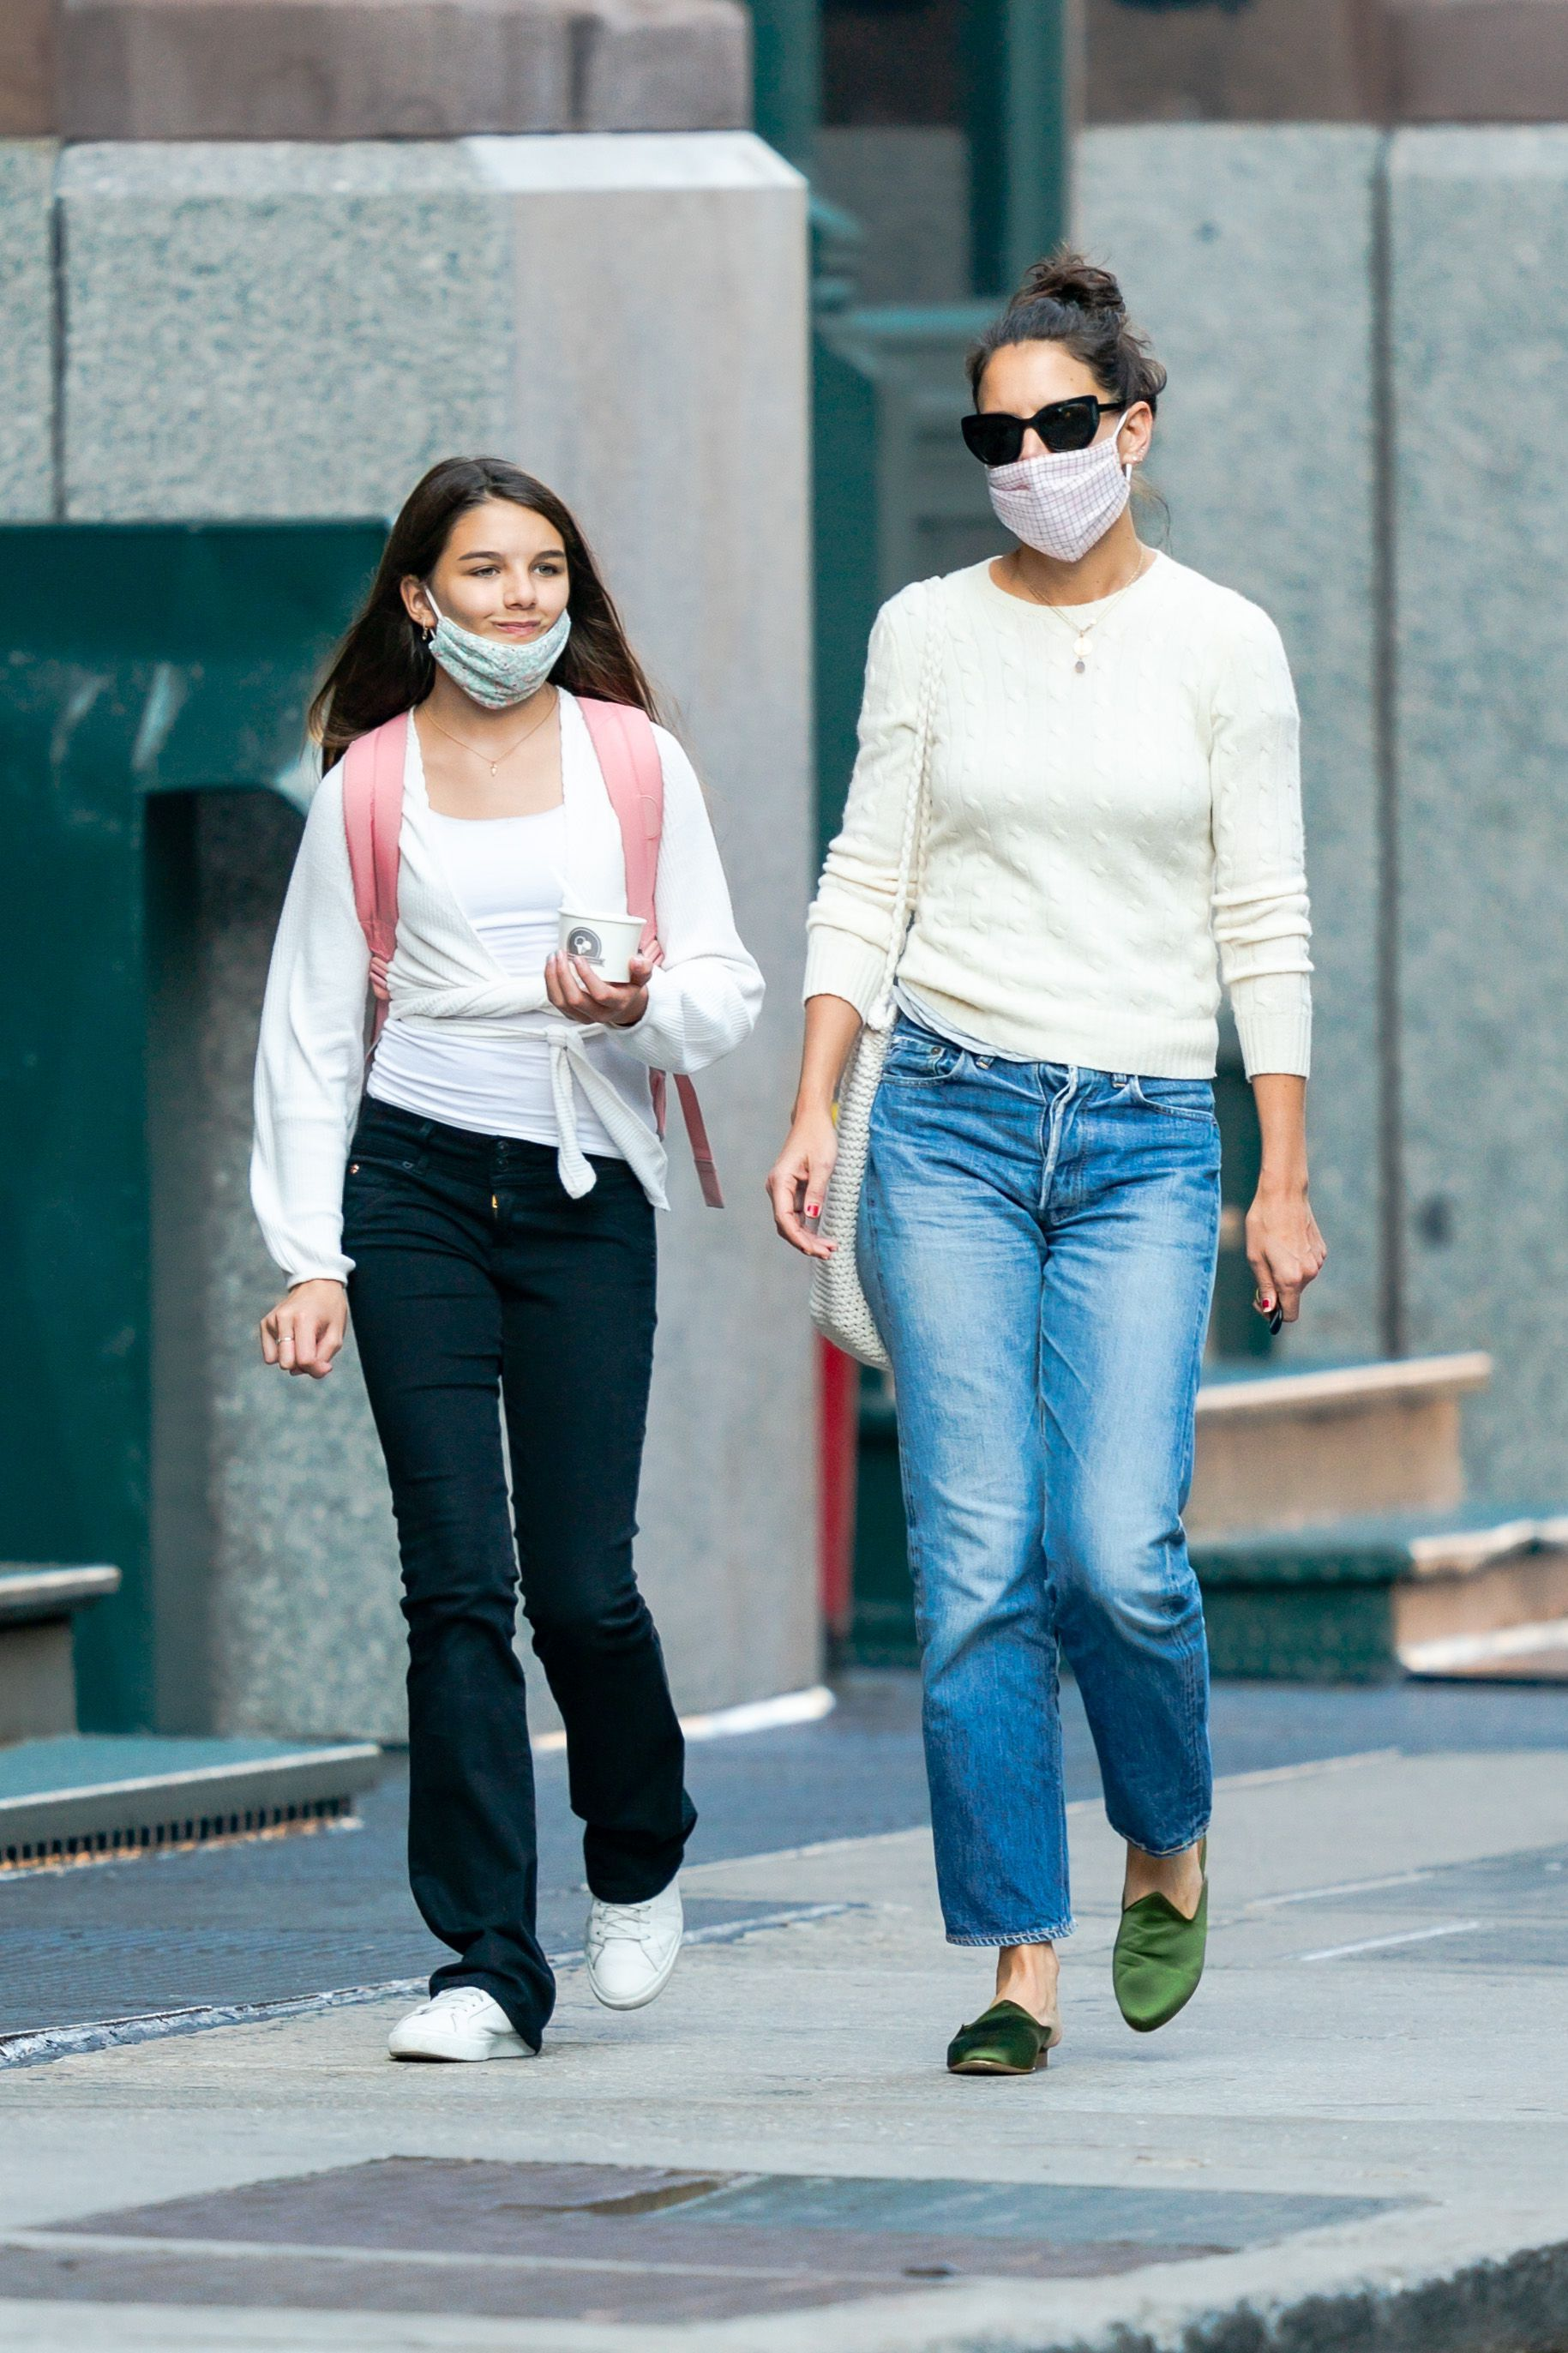 Suri Cruise and Katie Homes pictured in New York City, 2020. | Photo: Getty Images